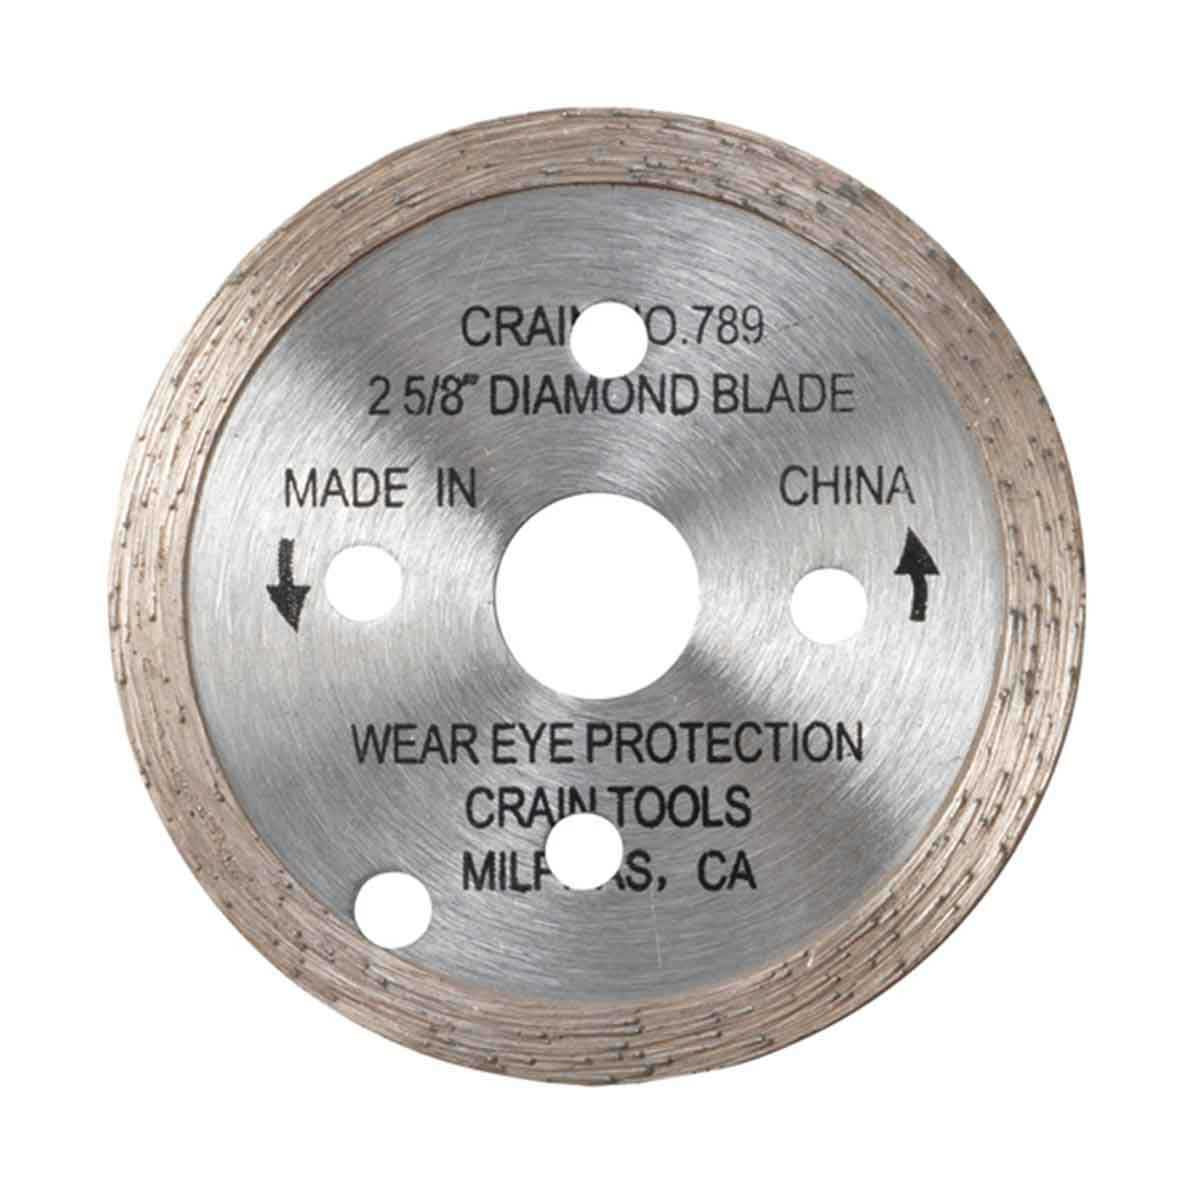 Diamond Blade Crain toe kick saw